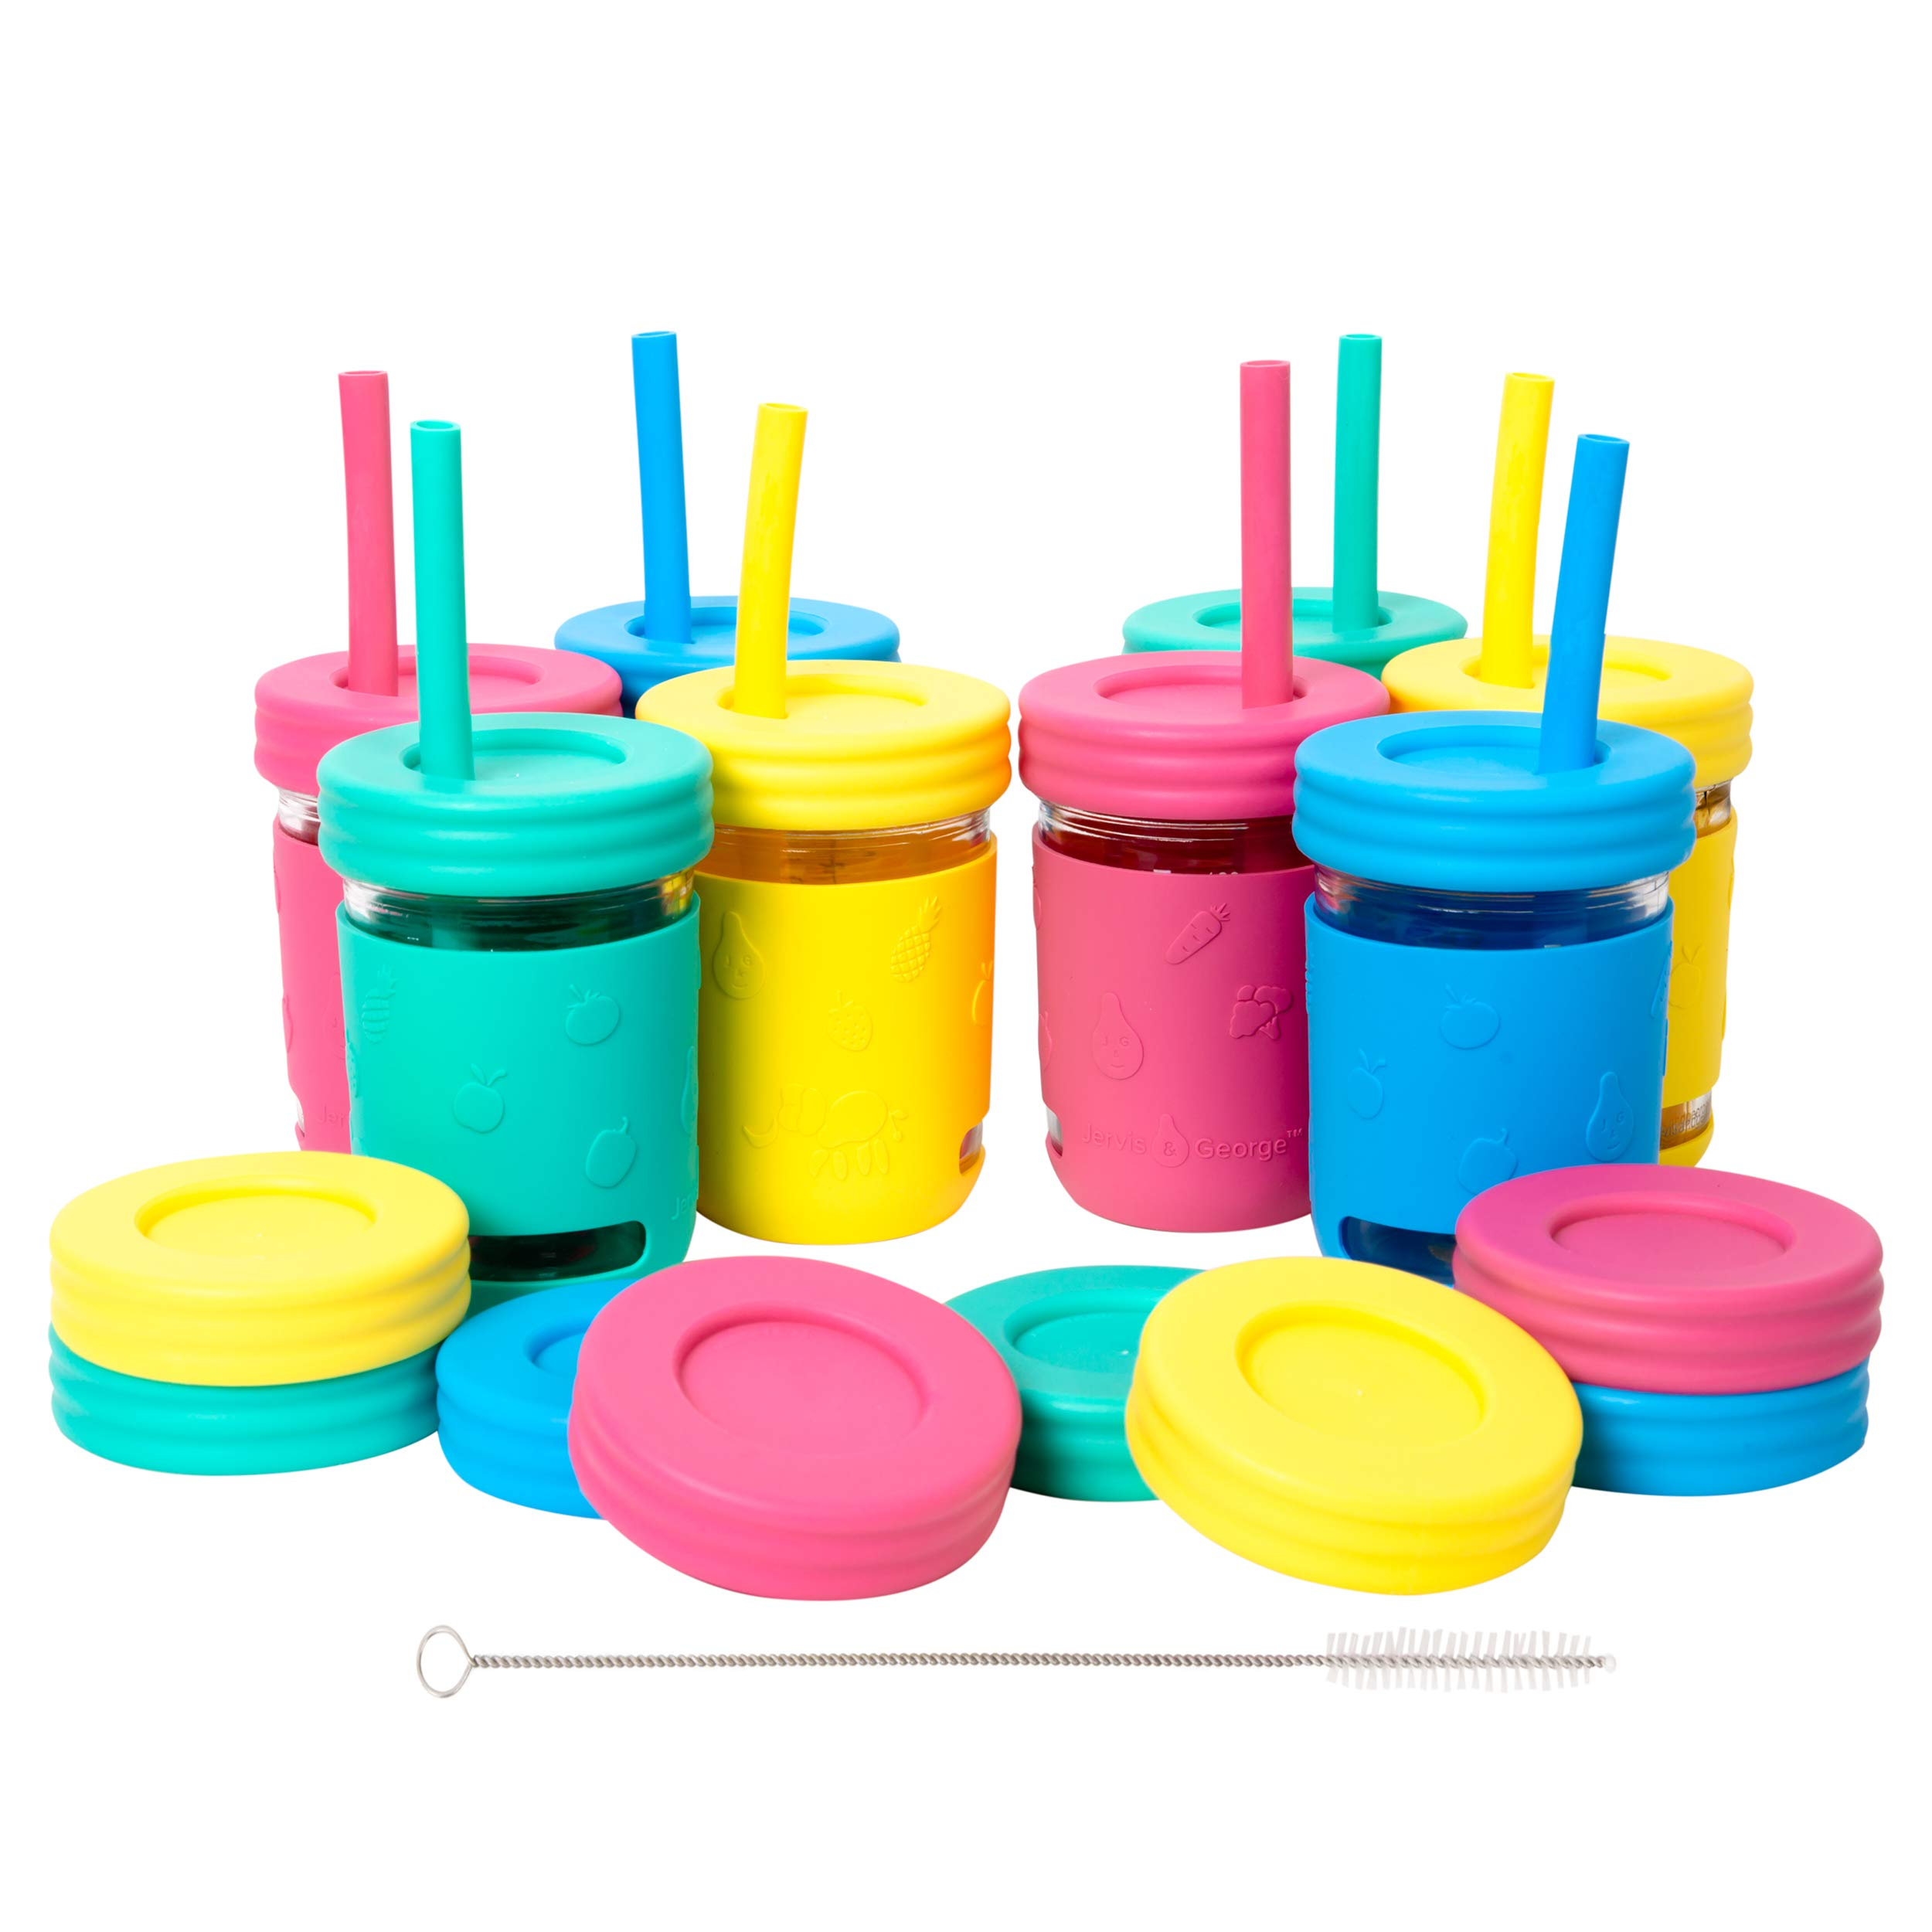 Kids 8oz Glass Mason Jar Drinking Cups with Silicone Sleeves + Straw Lids + Leak Proof Lids + Silicone Straws - Spill Proof, Sippy Cups for Toddlers, Kids Drinking Glasses, Food Storage-8 Pack